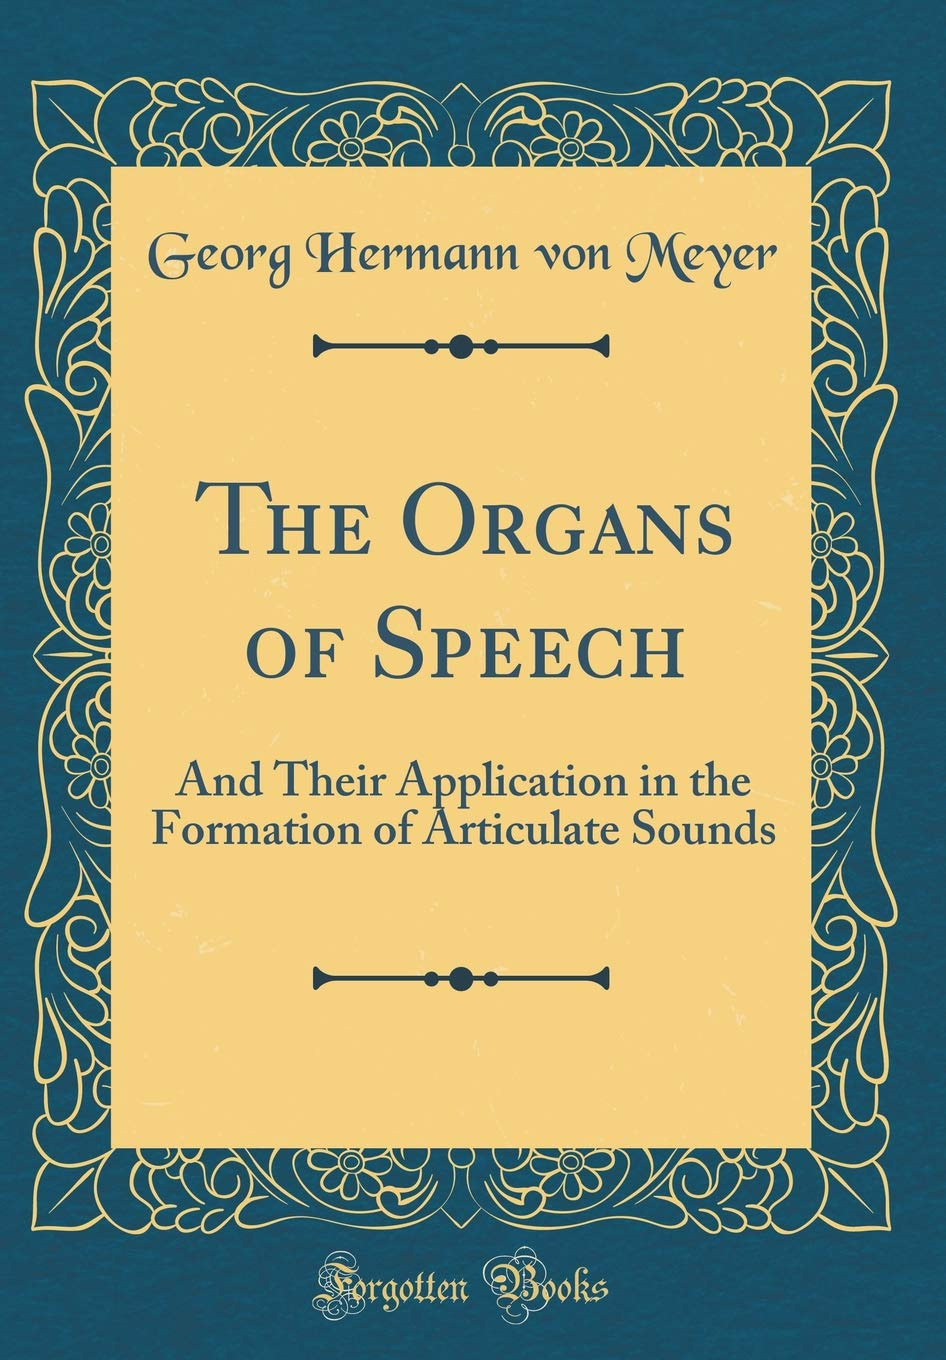 what are organs of speech